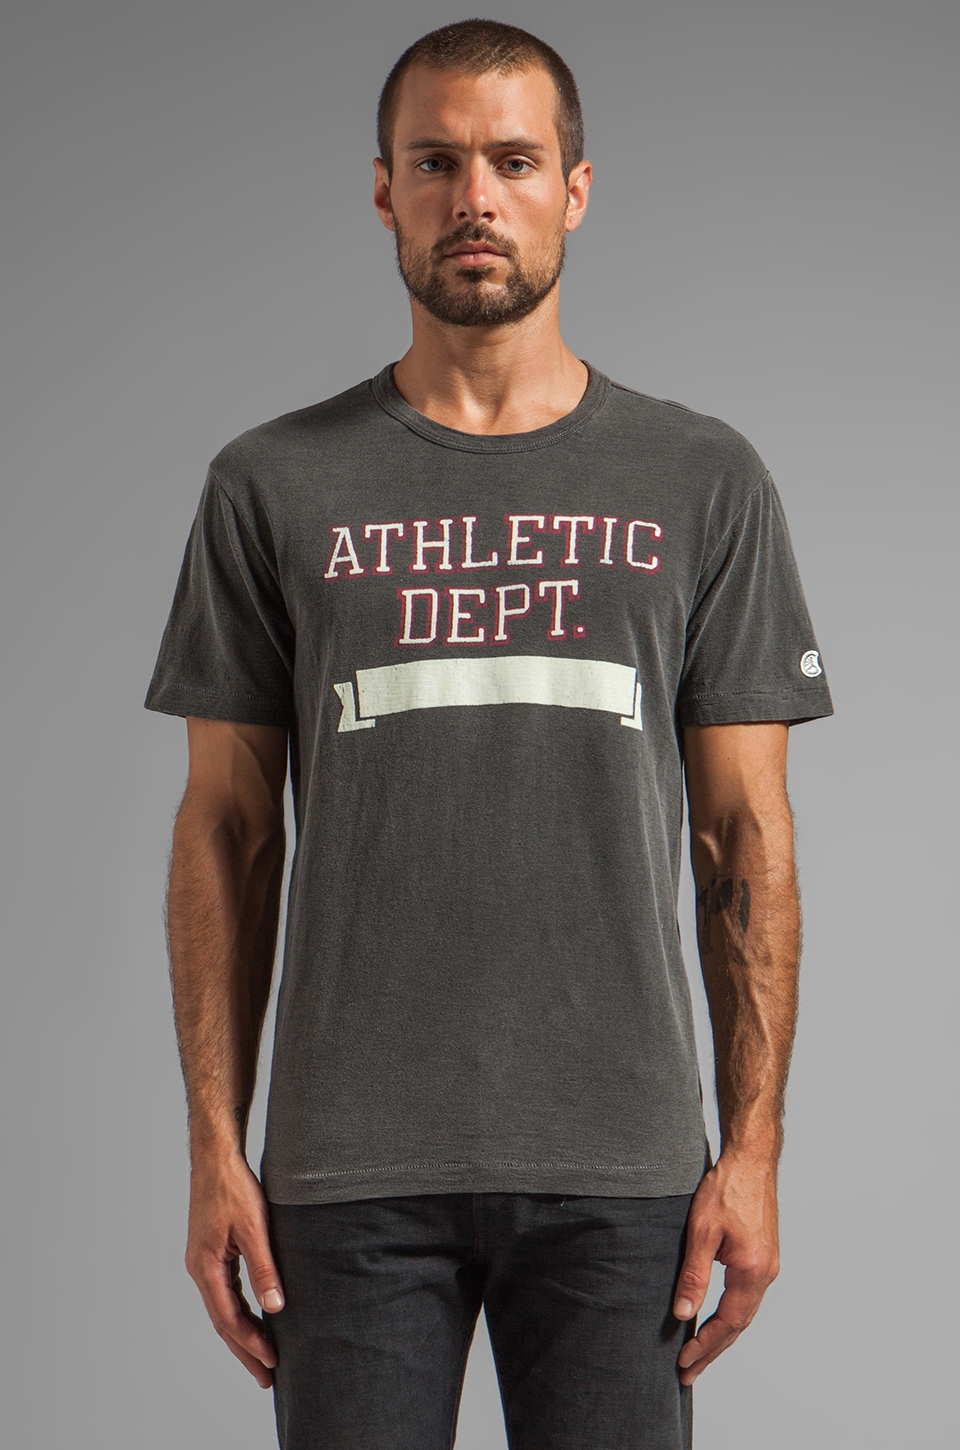 TODD SNYDER + Champion Athletic Dept Tee in Faded Black